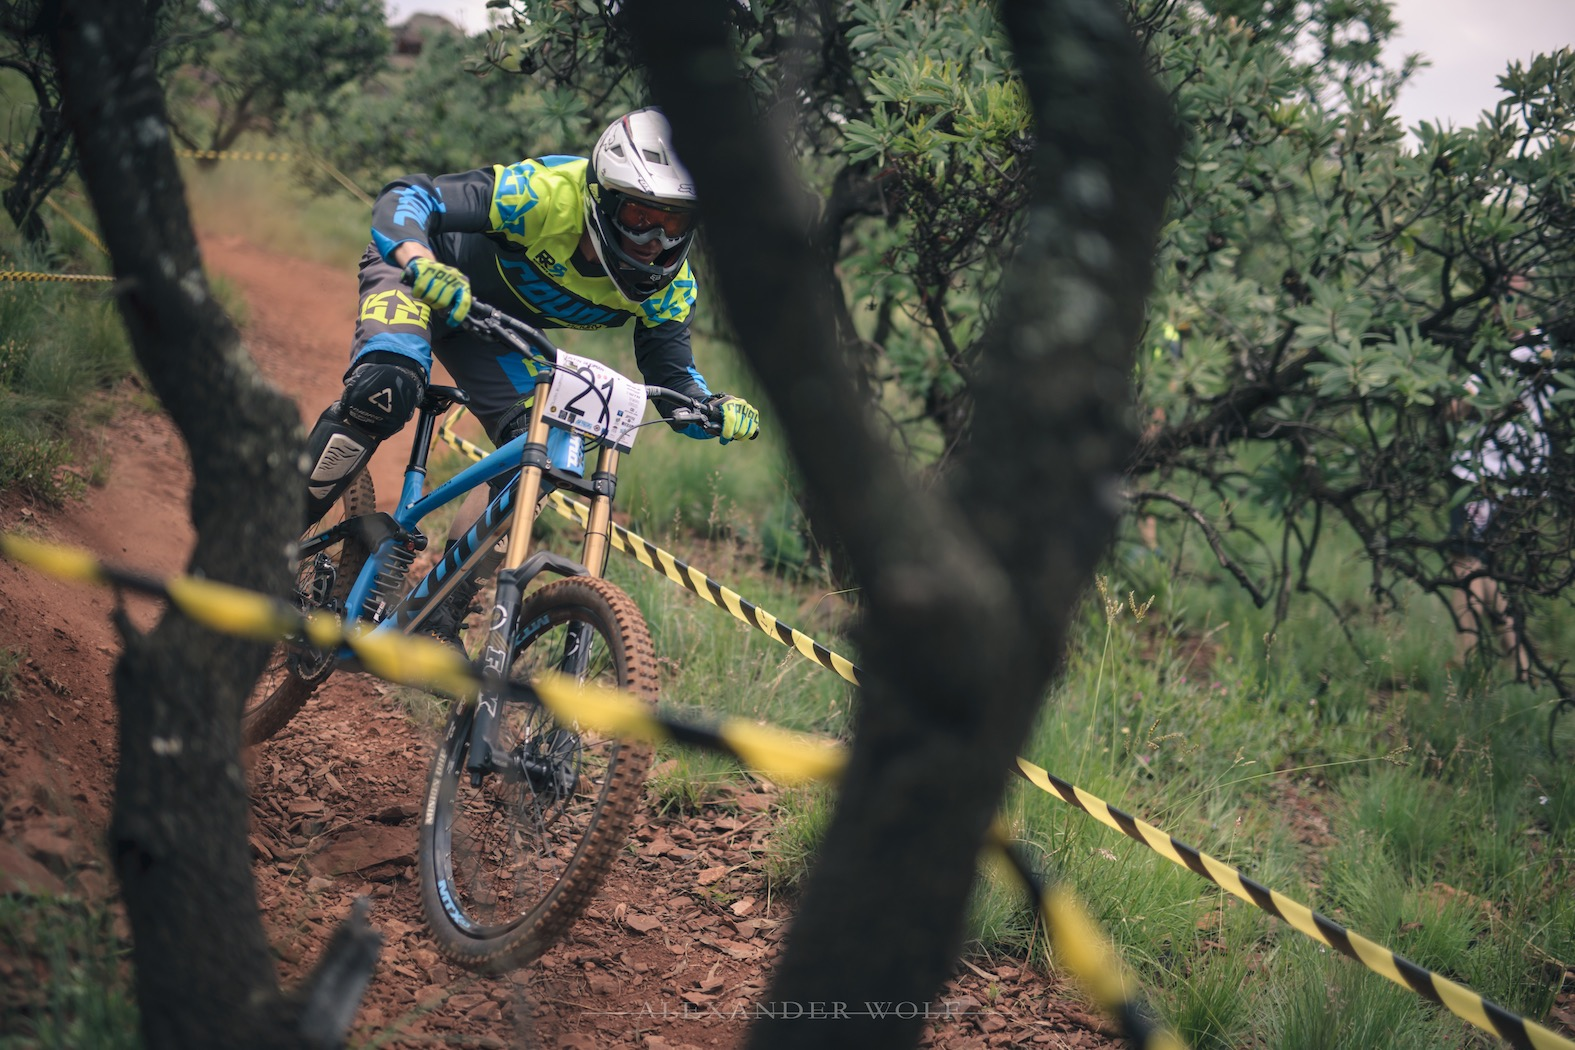 Review and Results from the 3rd Round of the 2017 Dustin Rudman Invitational Downhill MTB and Enduro MTB event